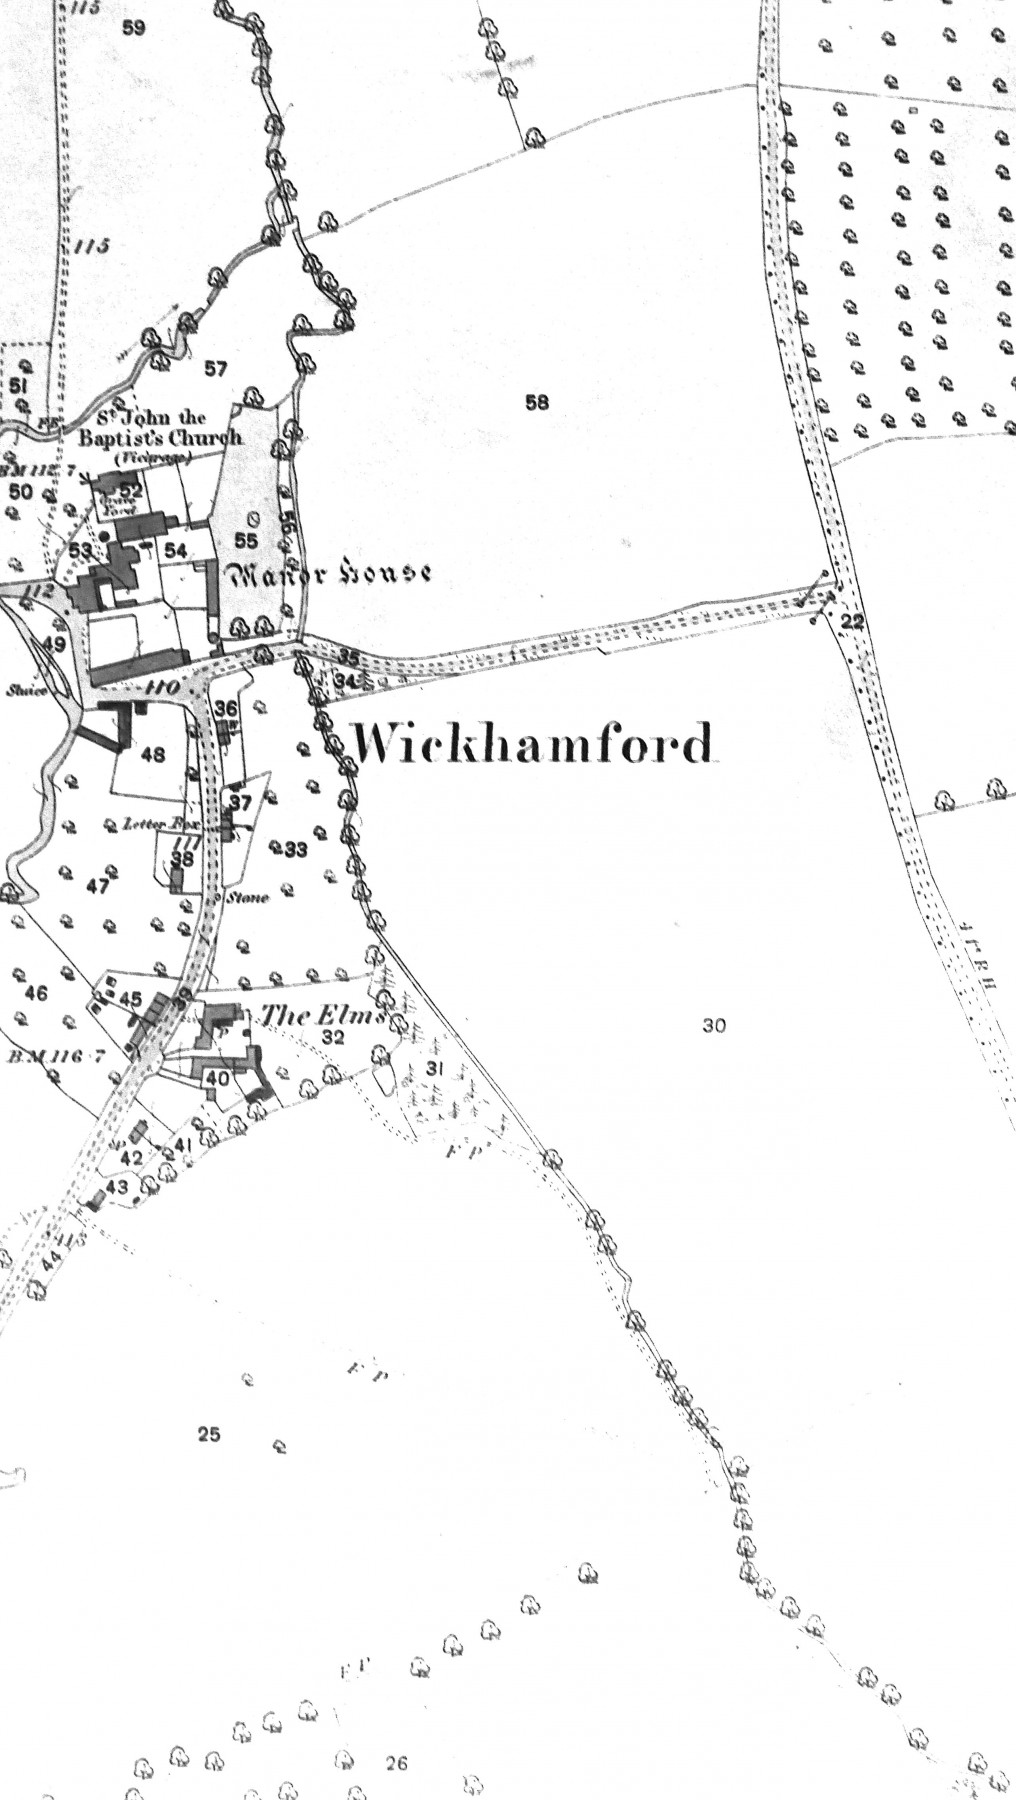 A detail showing the area around Wickhamford Manor